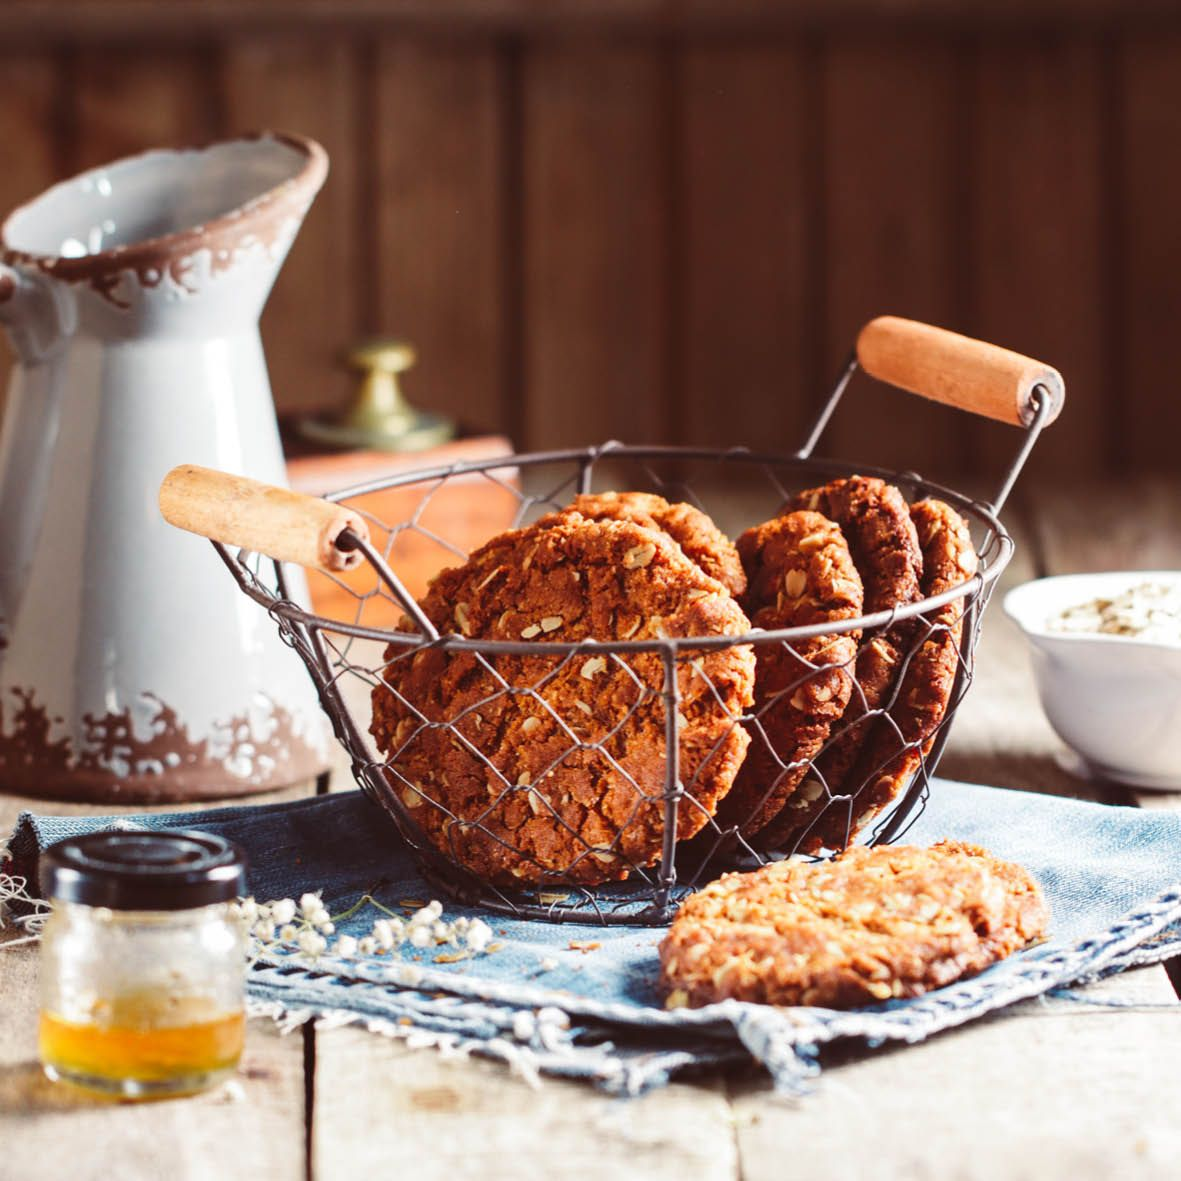 Anzac_biscuits_2020.jpg